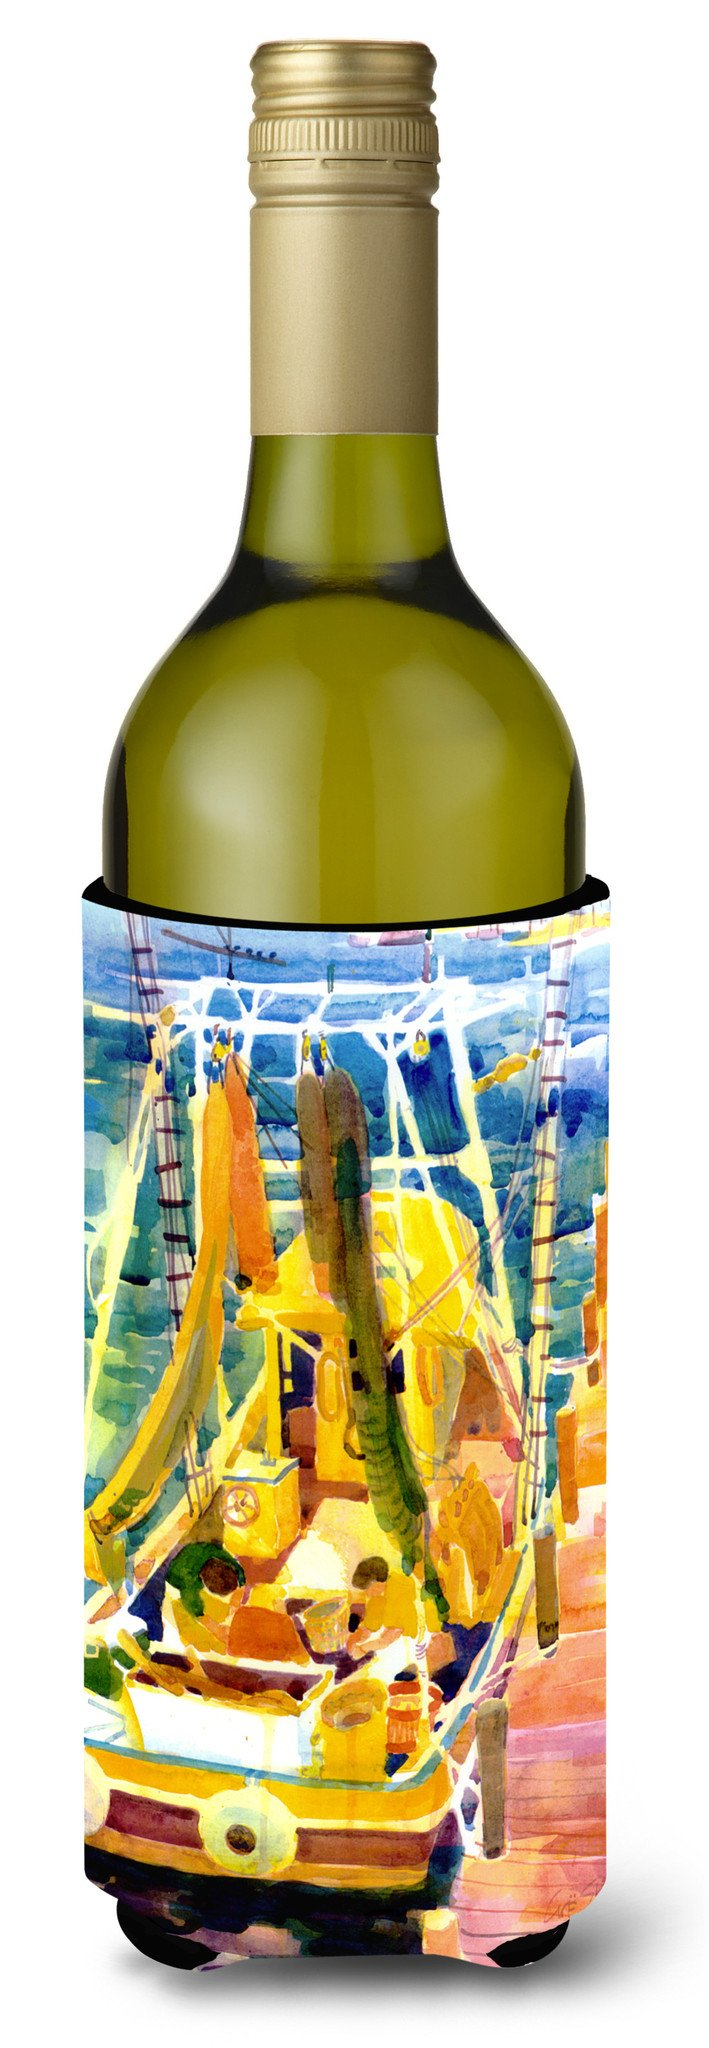 Shrimp Boats Wine Bottle Beverage Insulator Beverage Insulator Hugger by Caroline's Treasures